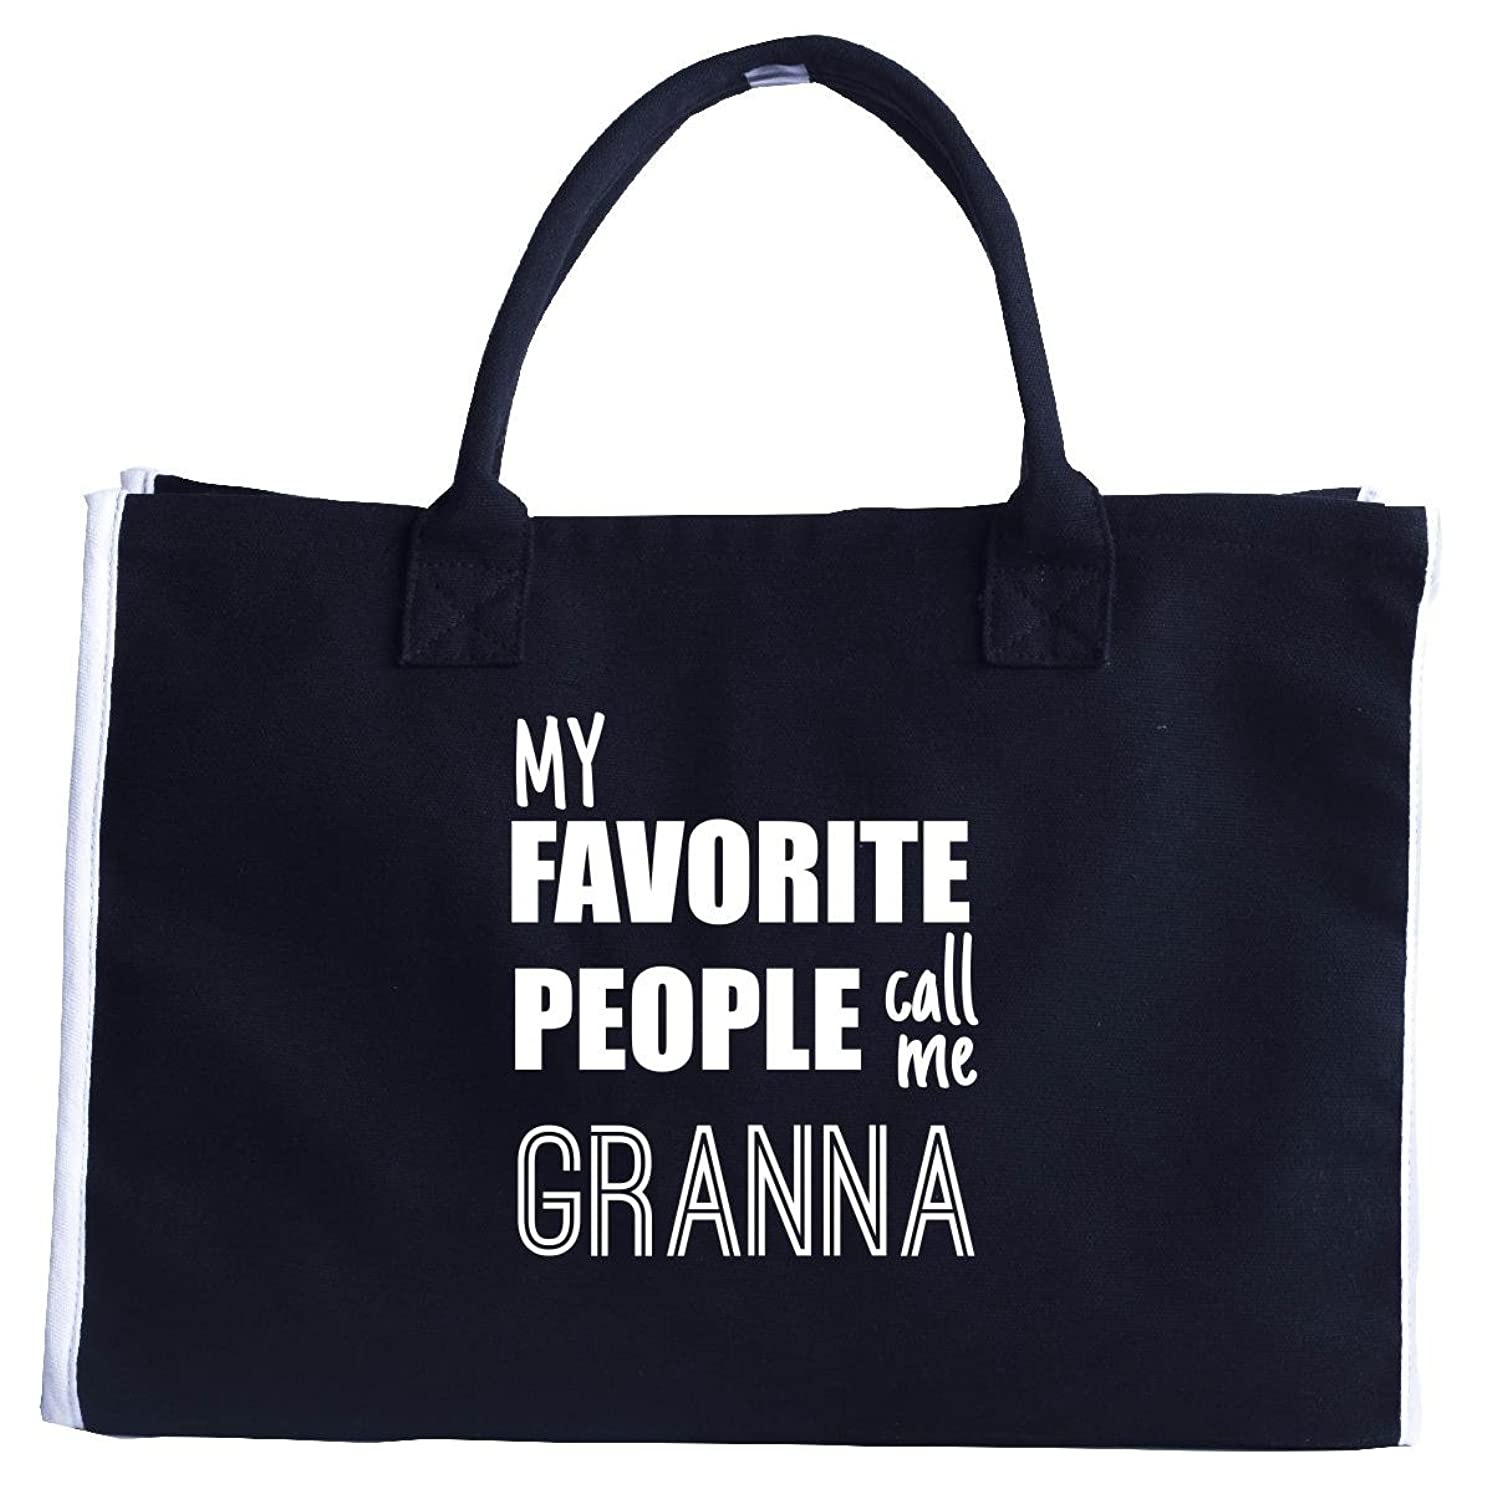 My Favorite People Call Me Granna Great Birthday Or Christmas Gift - Tote Bag